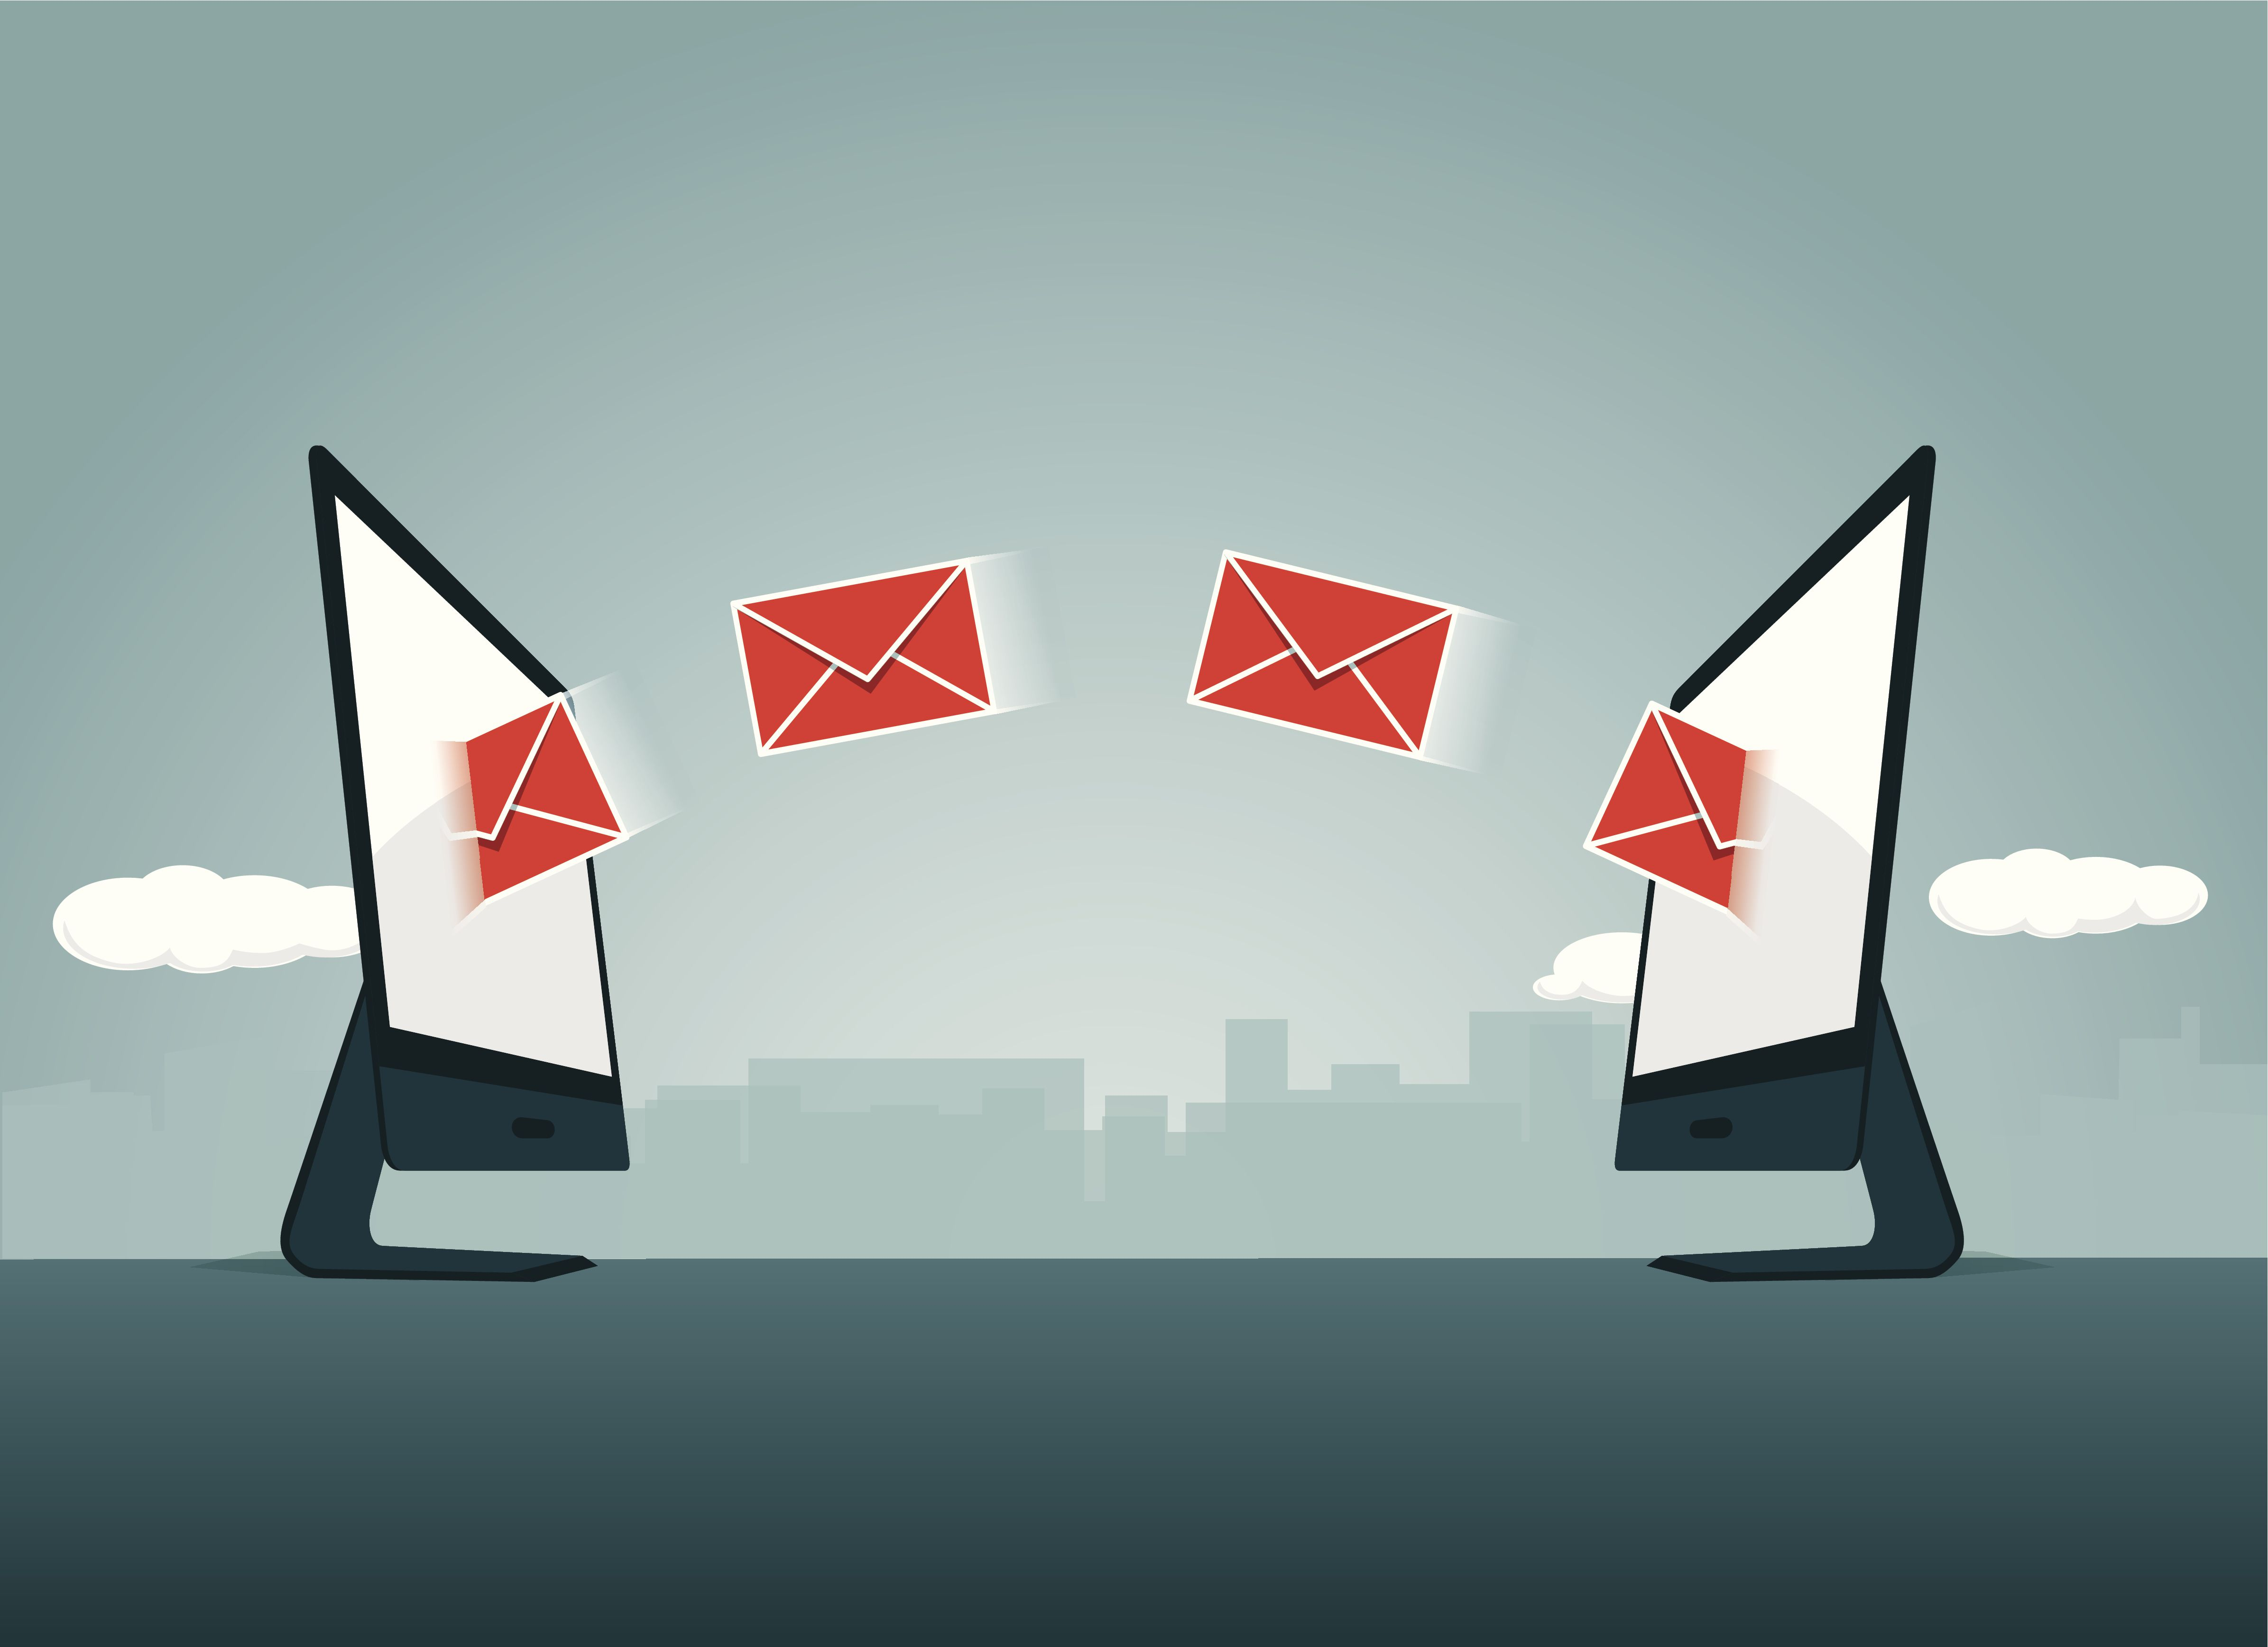 Smart Buy Auto >> Email Attachment Size Limits for AIM Mail and AOL Mail